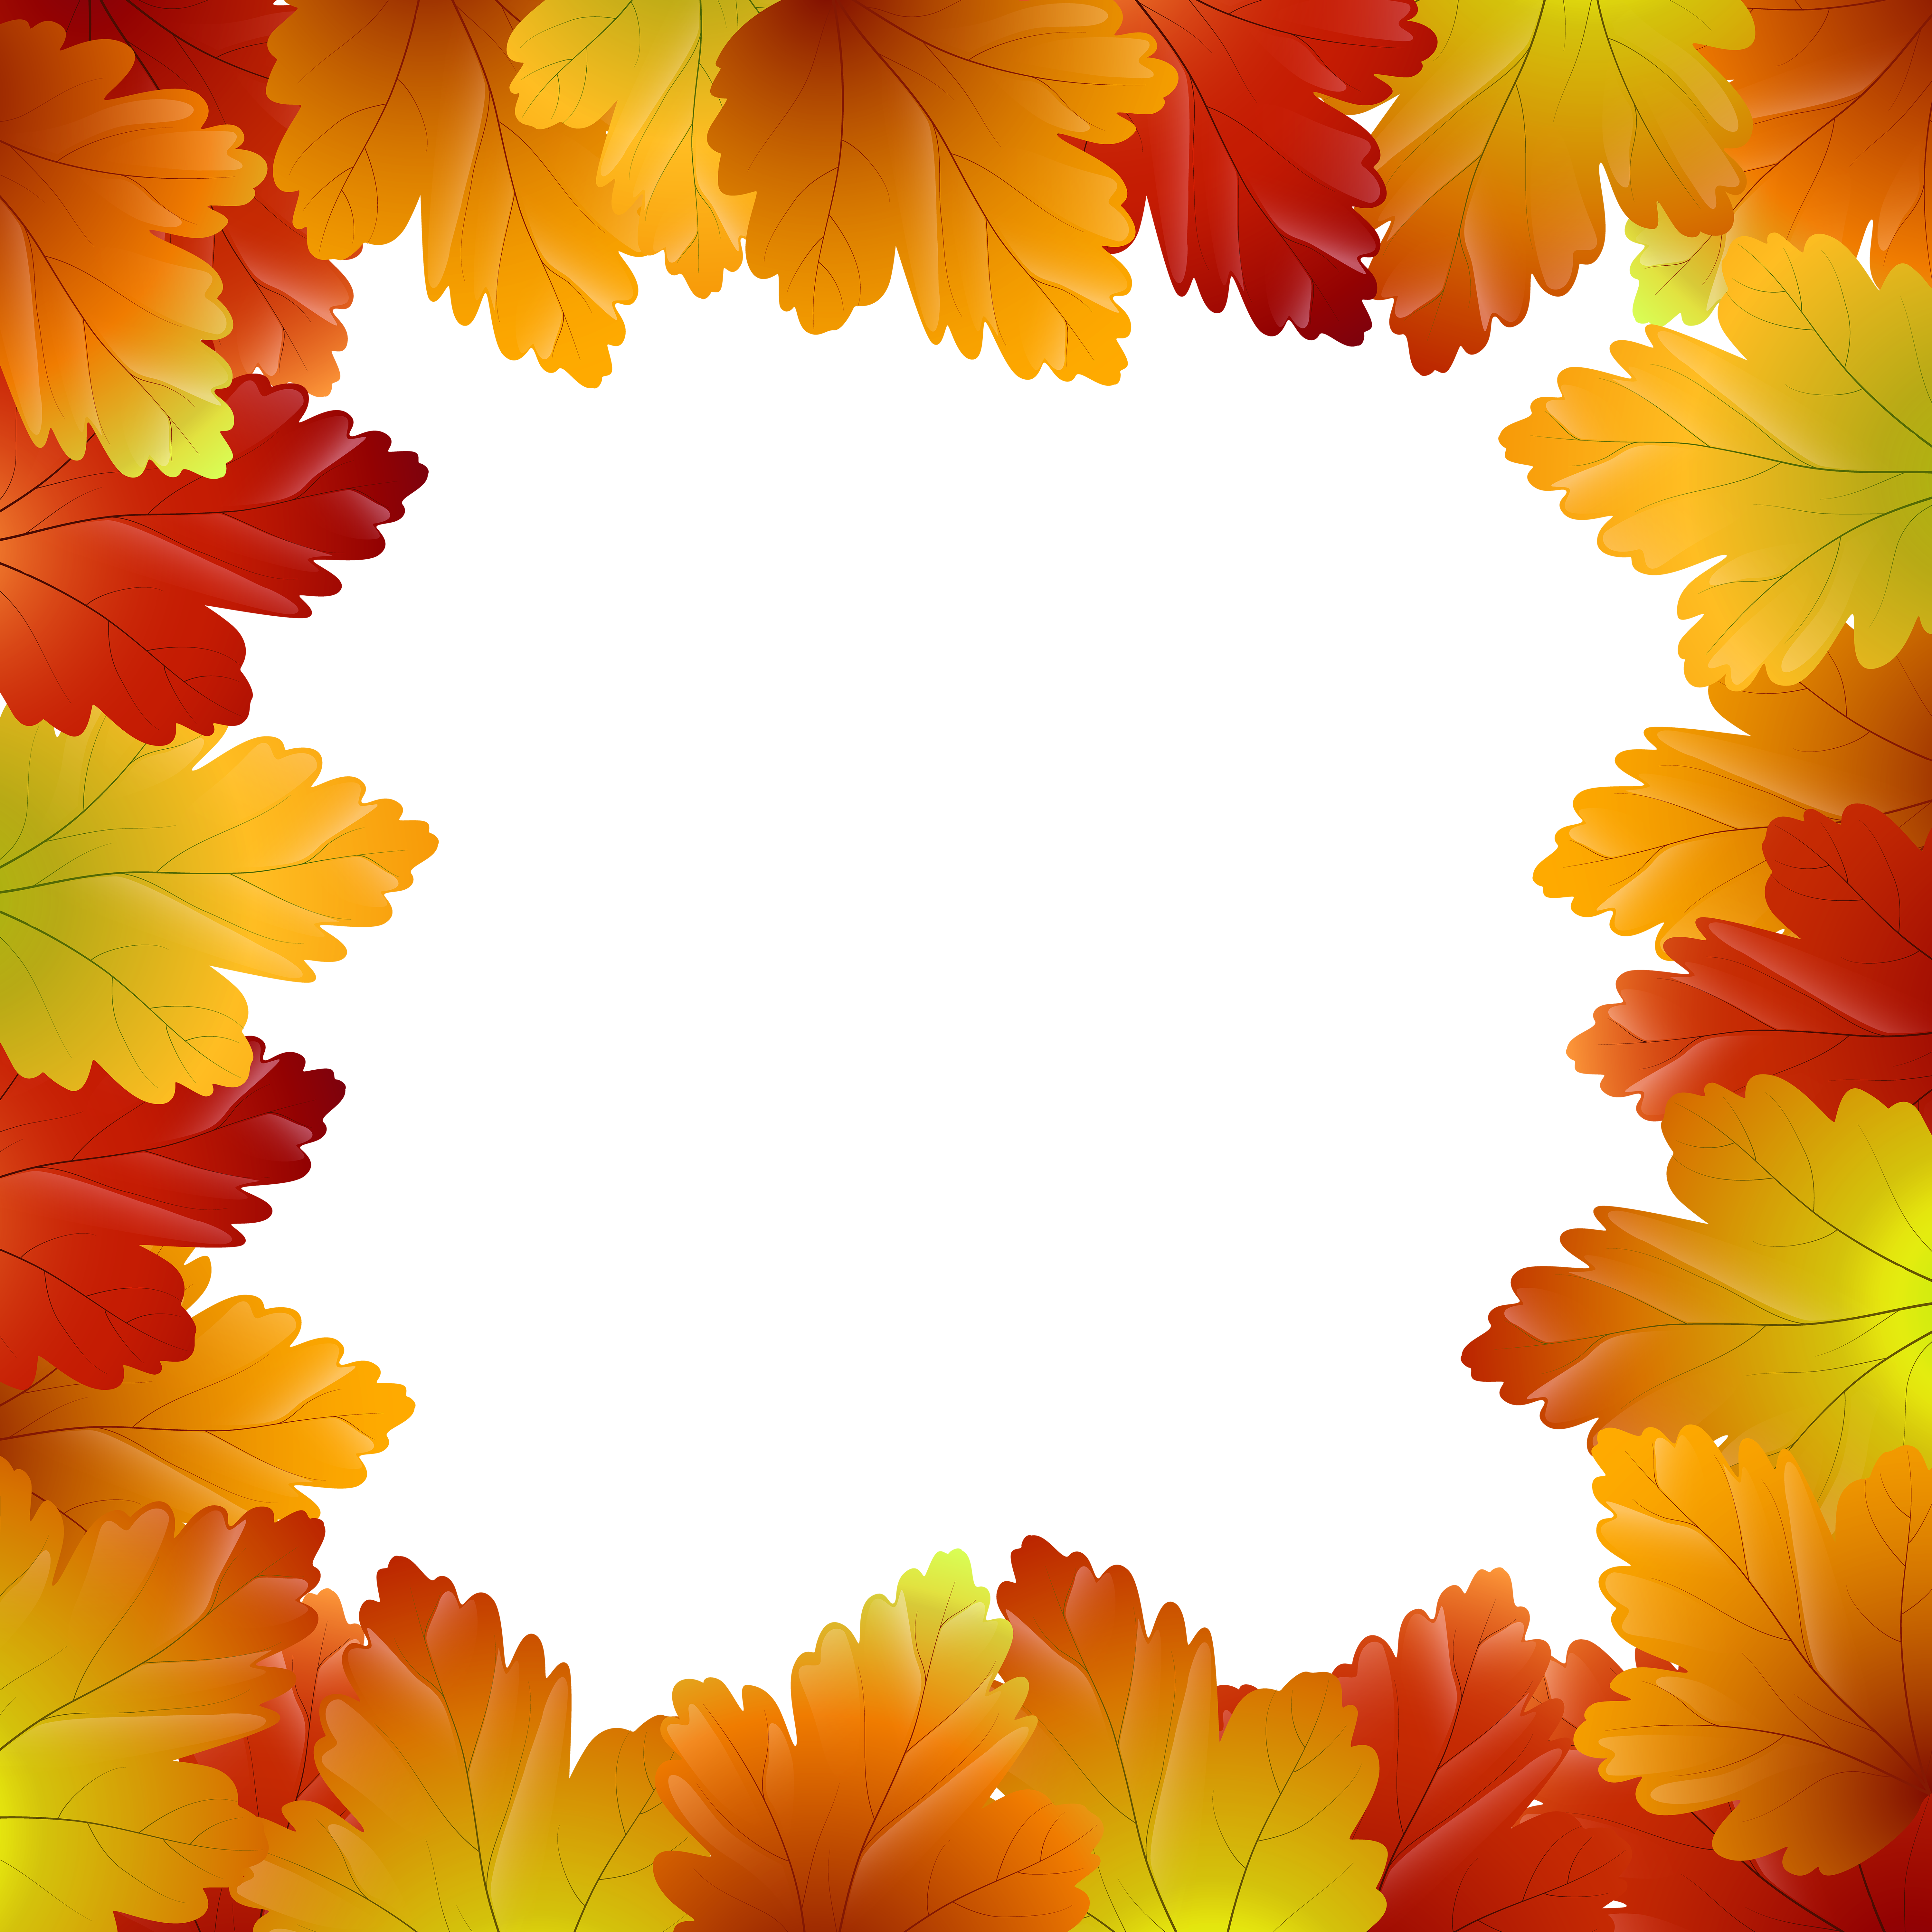 Fall frame png. Autumn leaves border clip